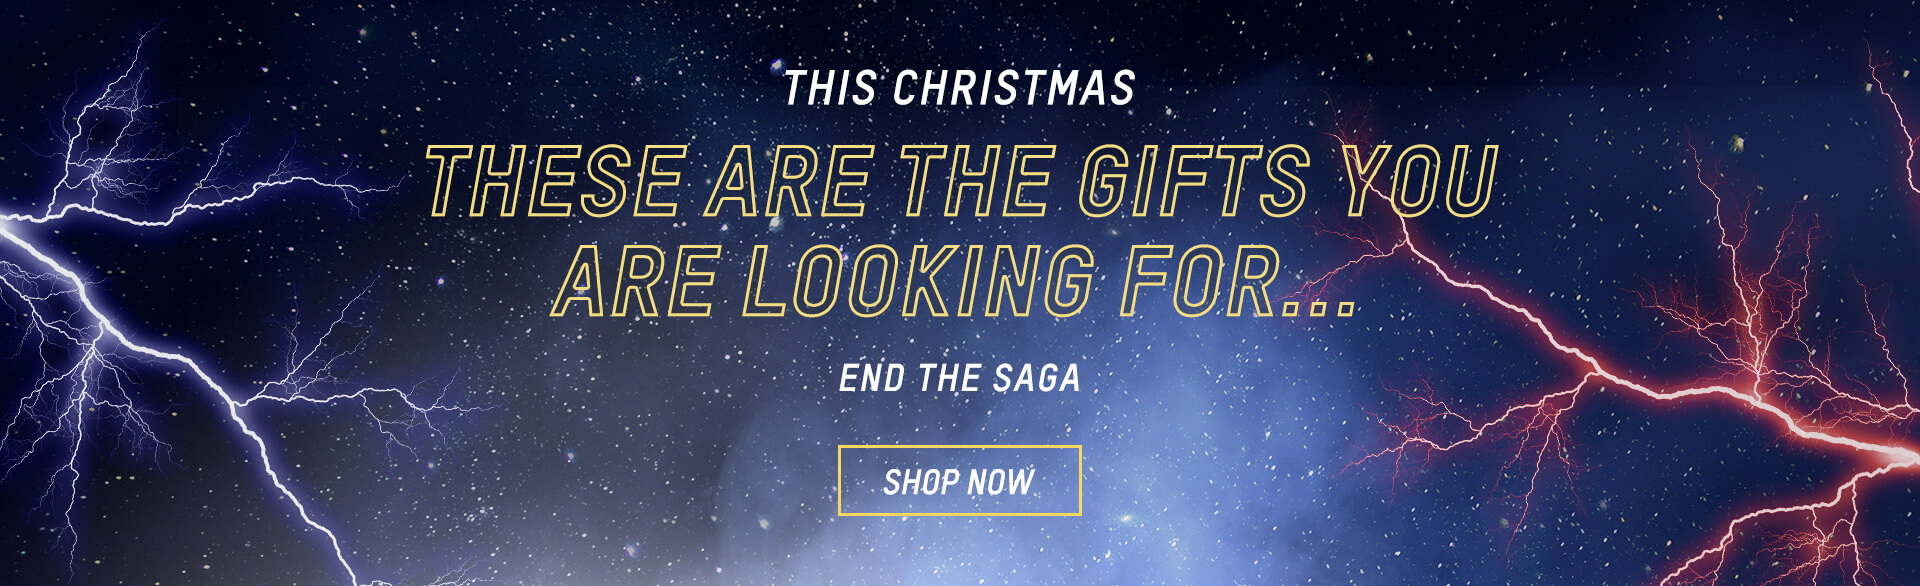 This Christmas: These are the gifts you're looking for